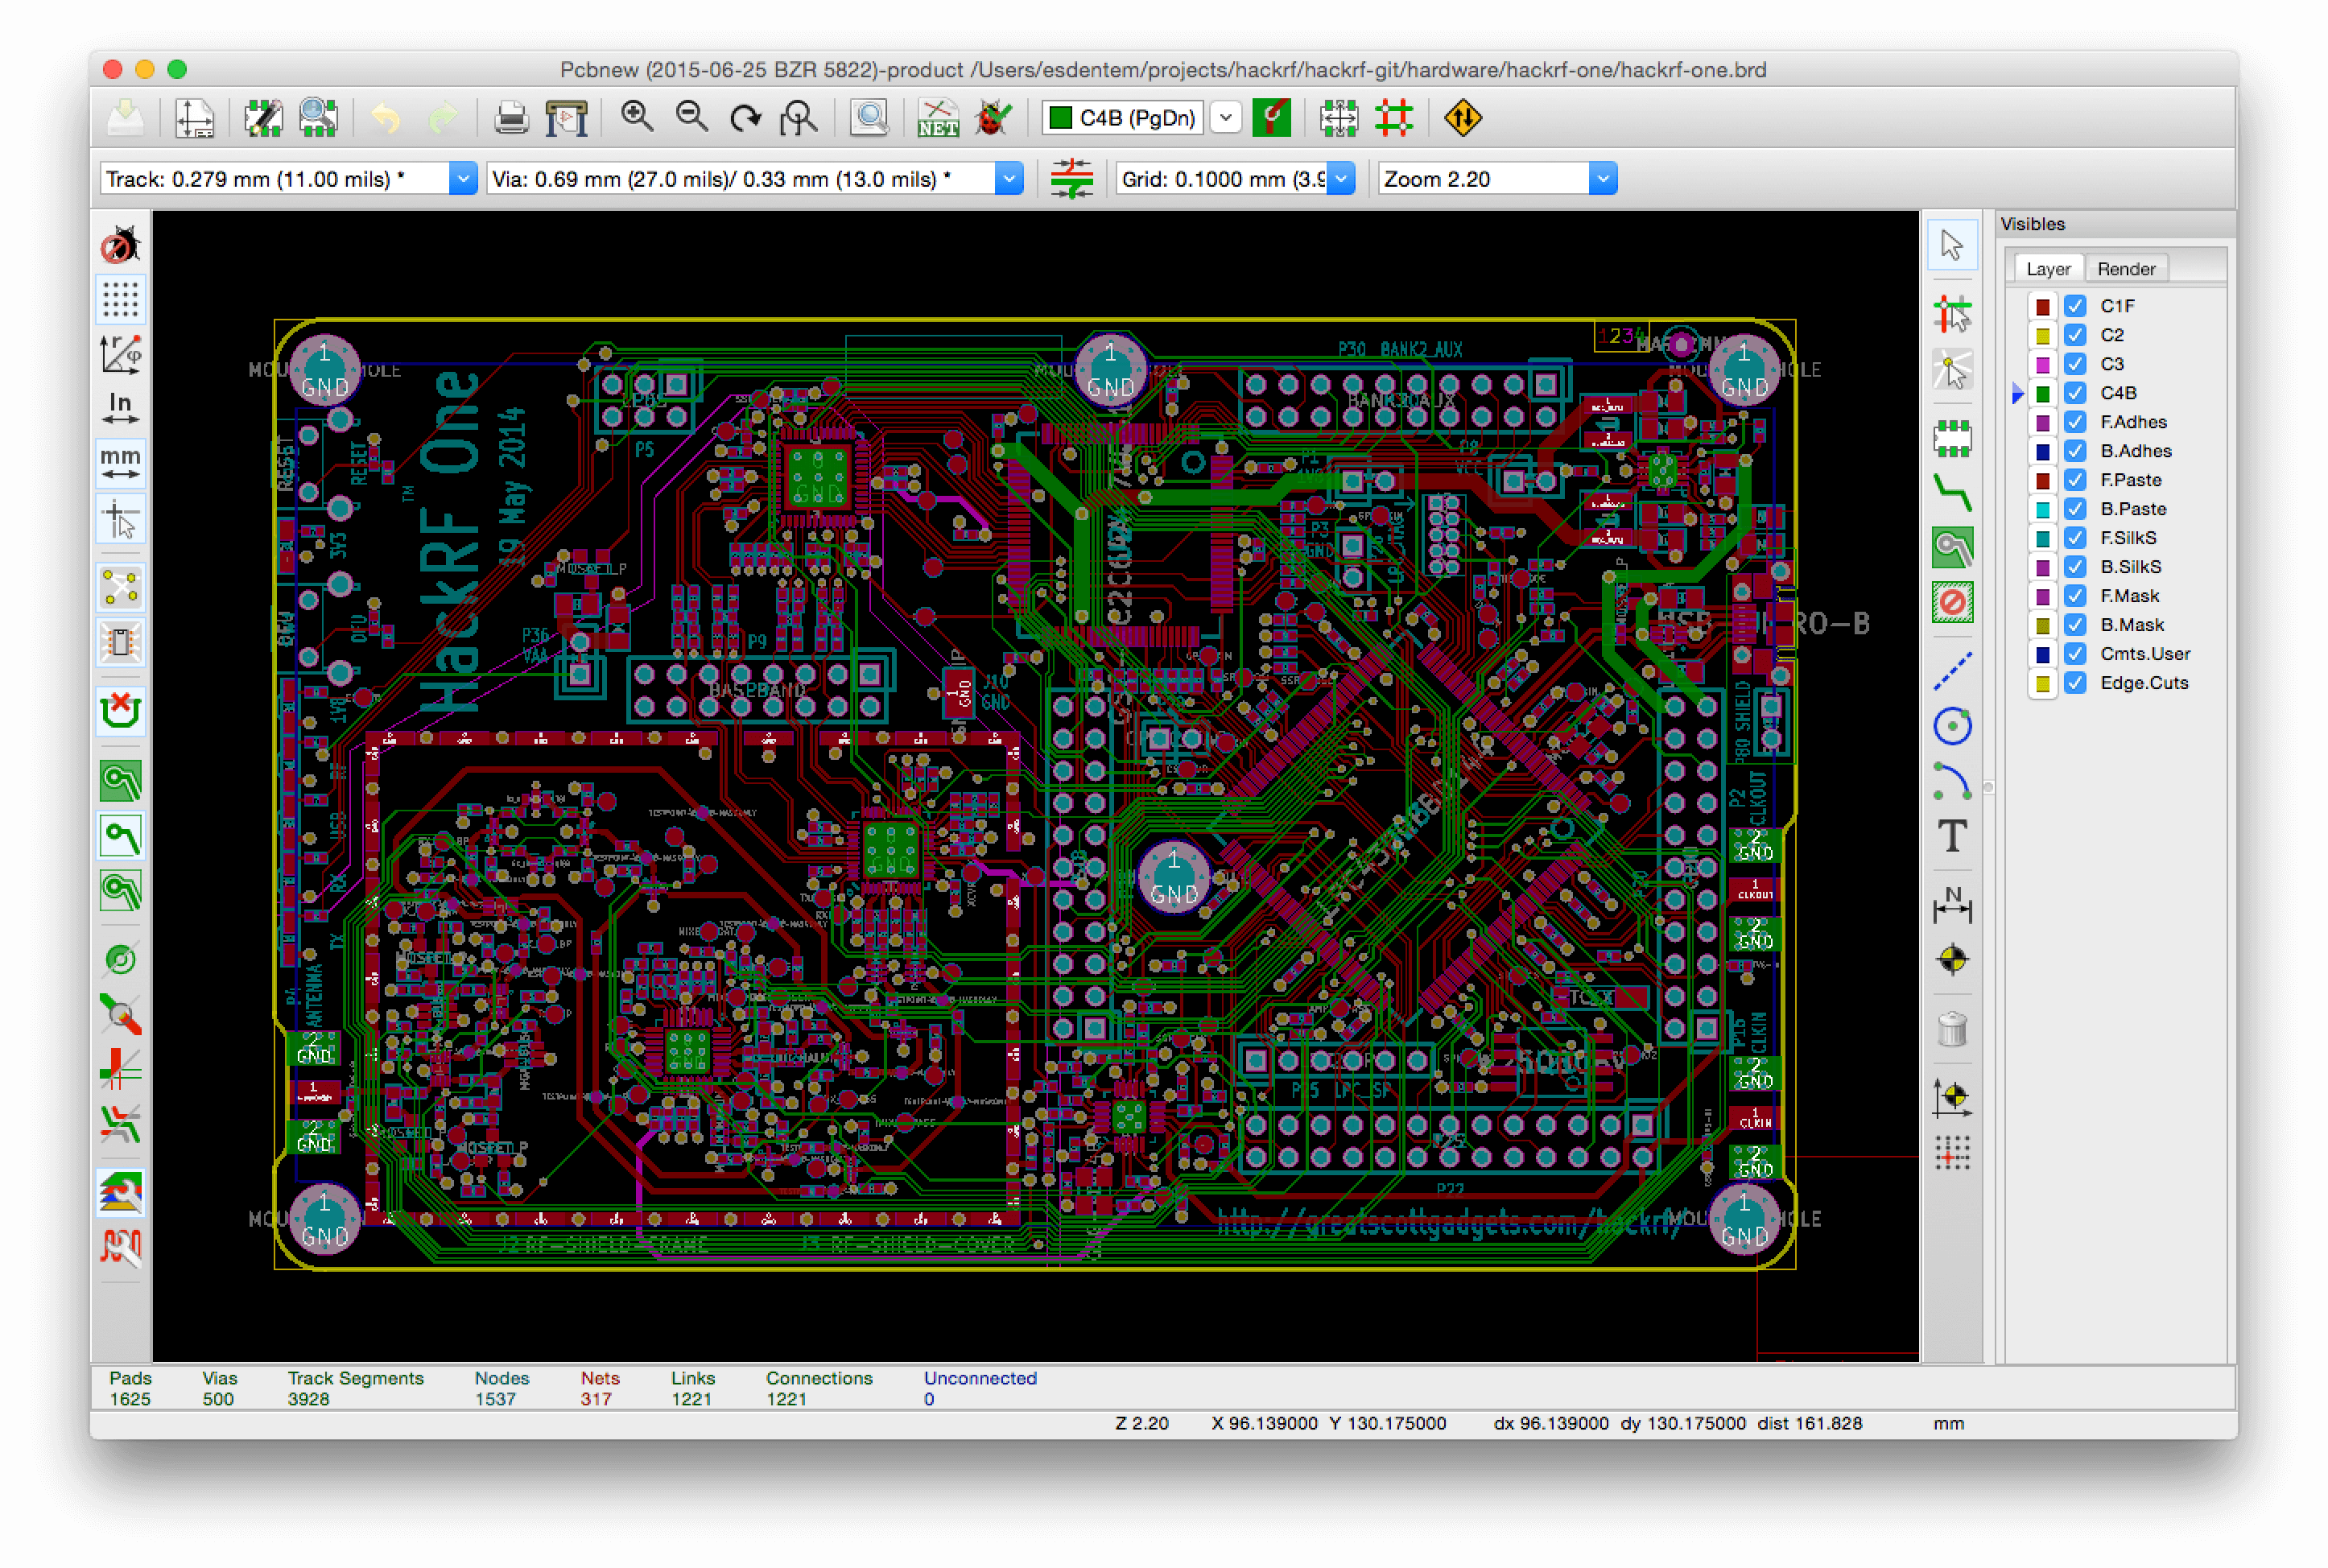 Screenshot showing Pcbnew on macOS for comparison